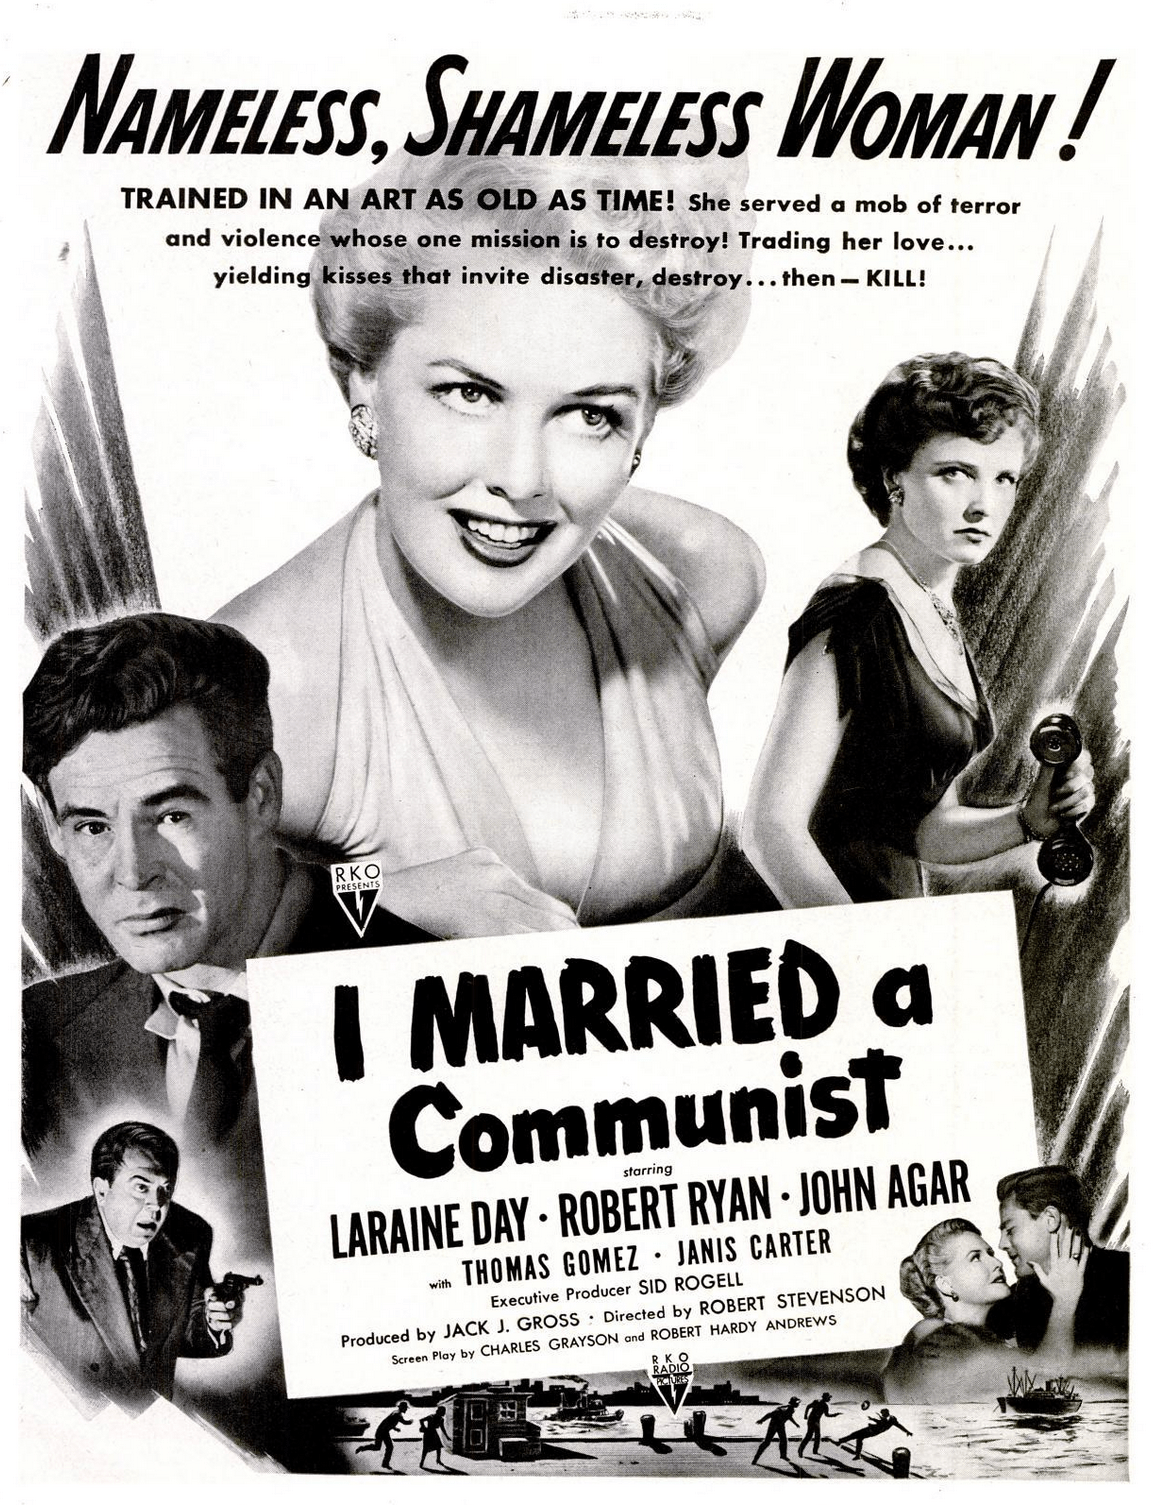 I Married a Communist - Witch Hunt in Hollywood - thecriptblog.com